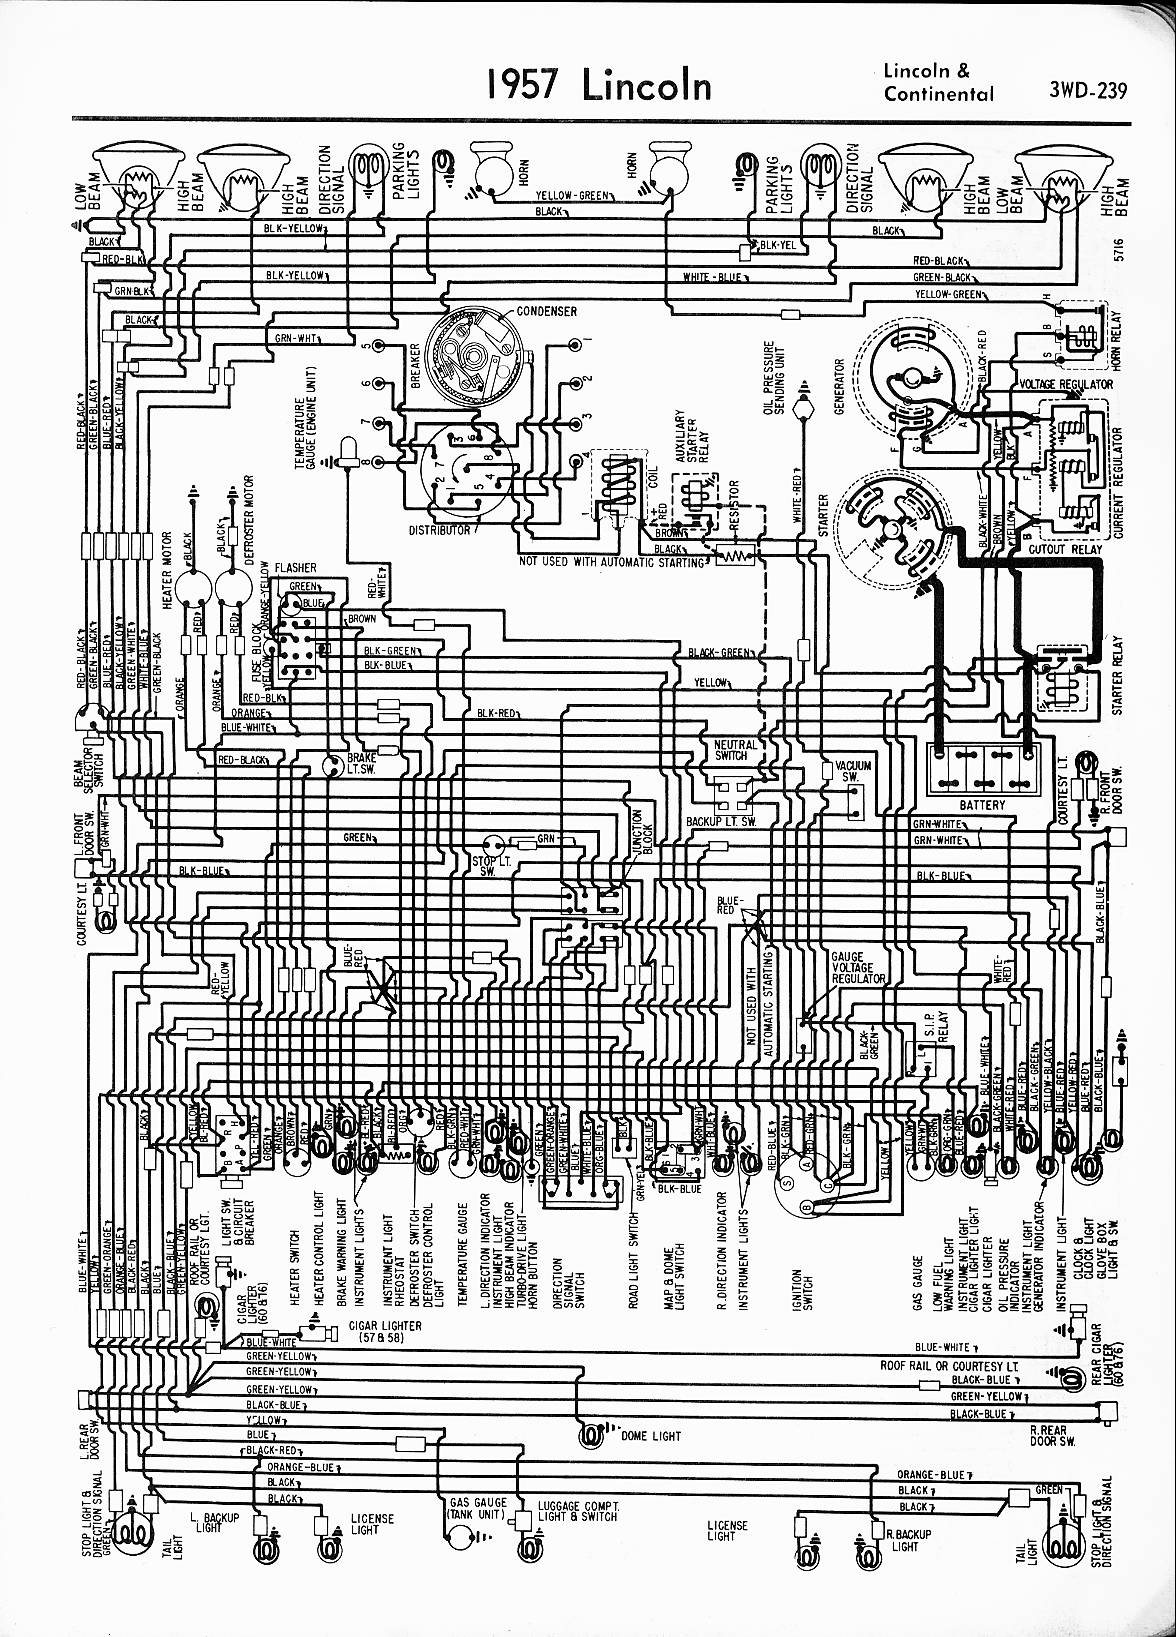 MWireLin_Lin57_z3wd 239z_001 lincoln wiring diagrams 1957 1965 Toyota JZX100 Mark II at gsmx.co